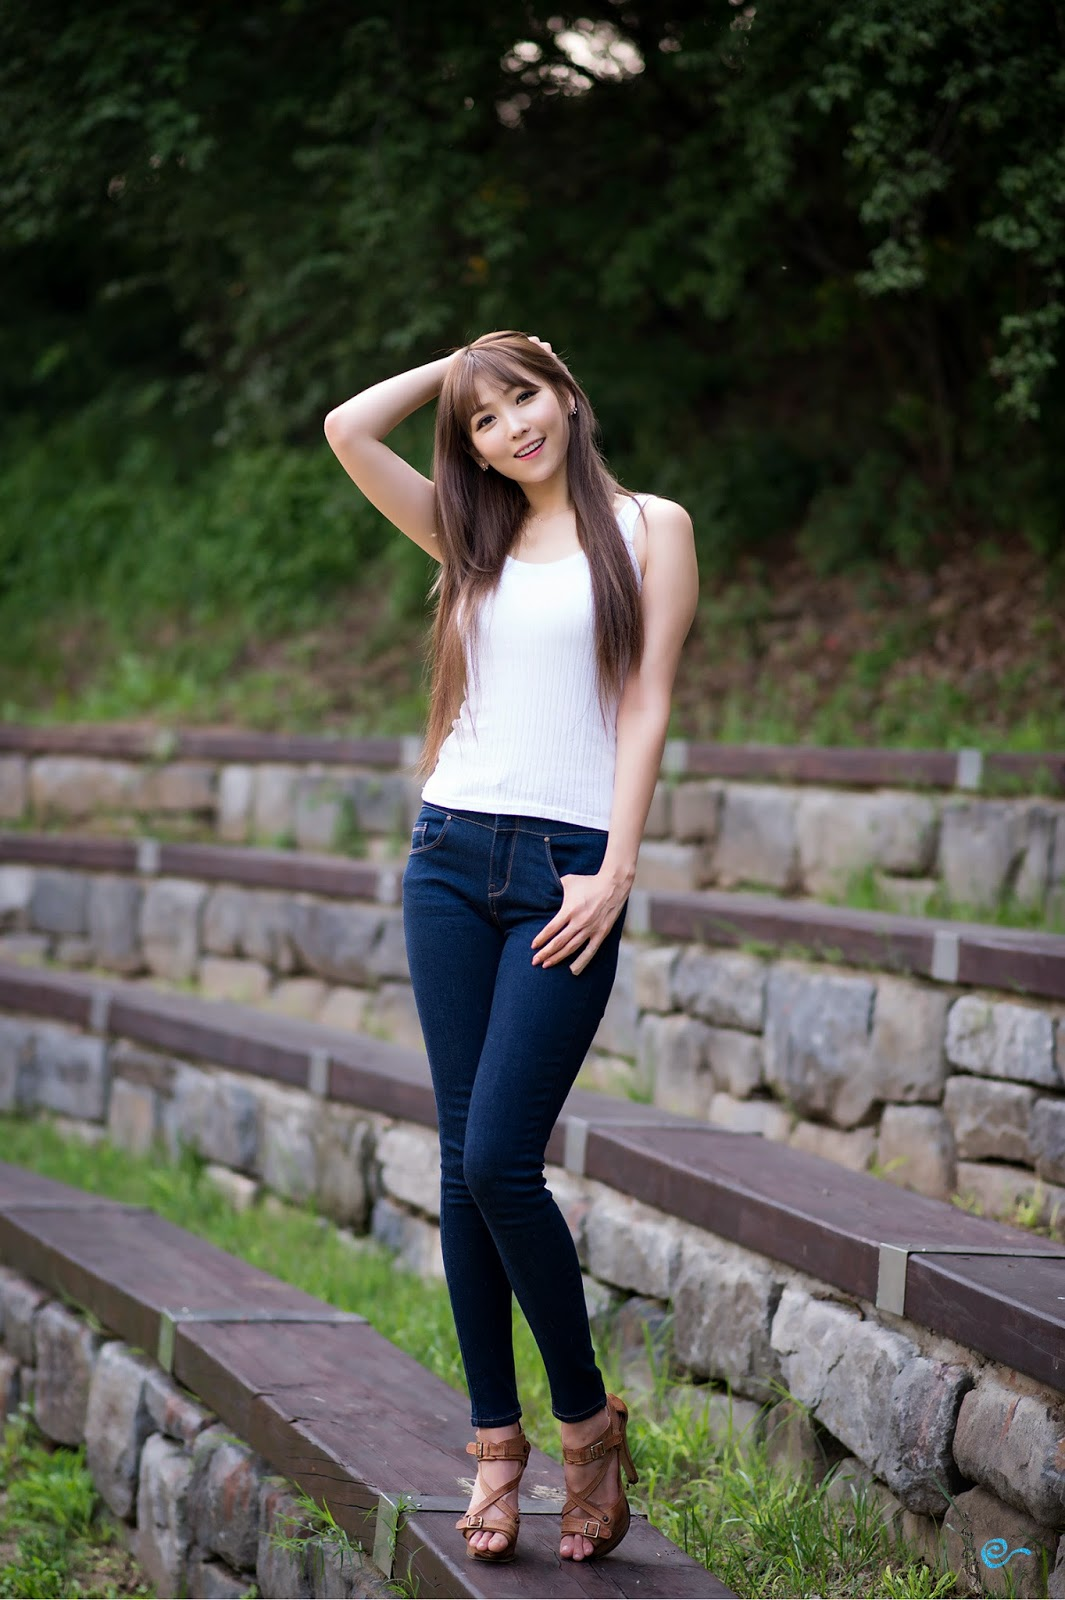 4 Lovely Lee Eun Hye In Outdoor Photo Shoot - very cute asian girl - girlcute4u.blogspot.com